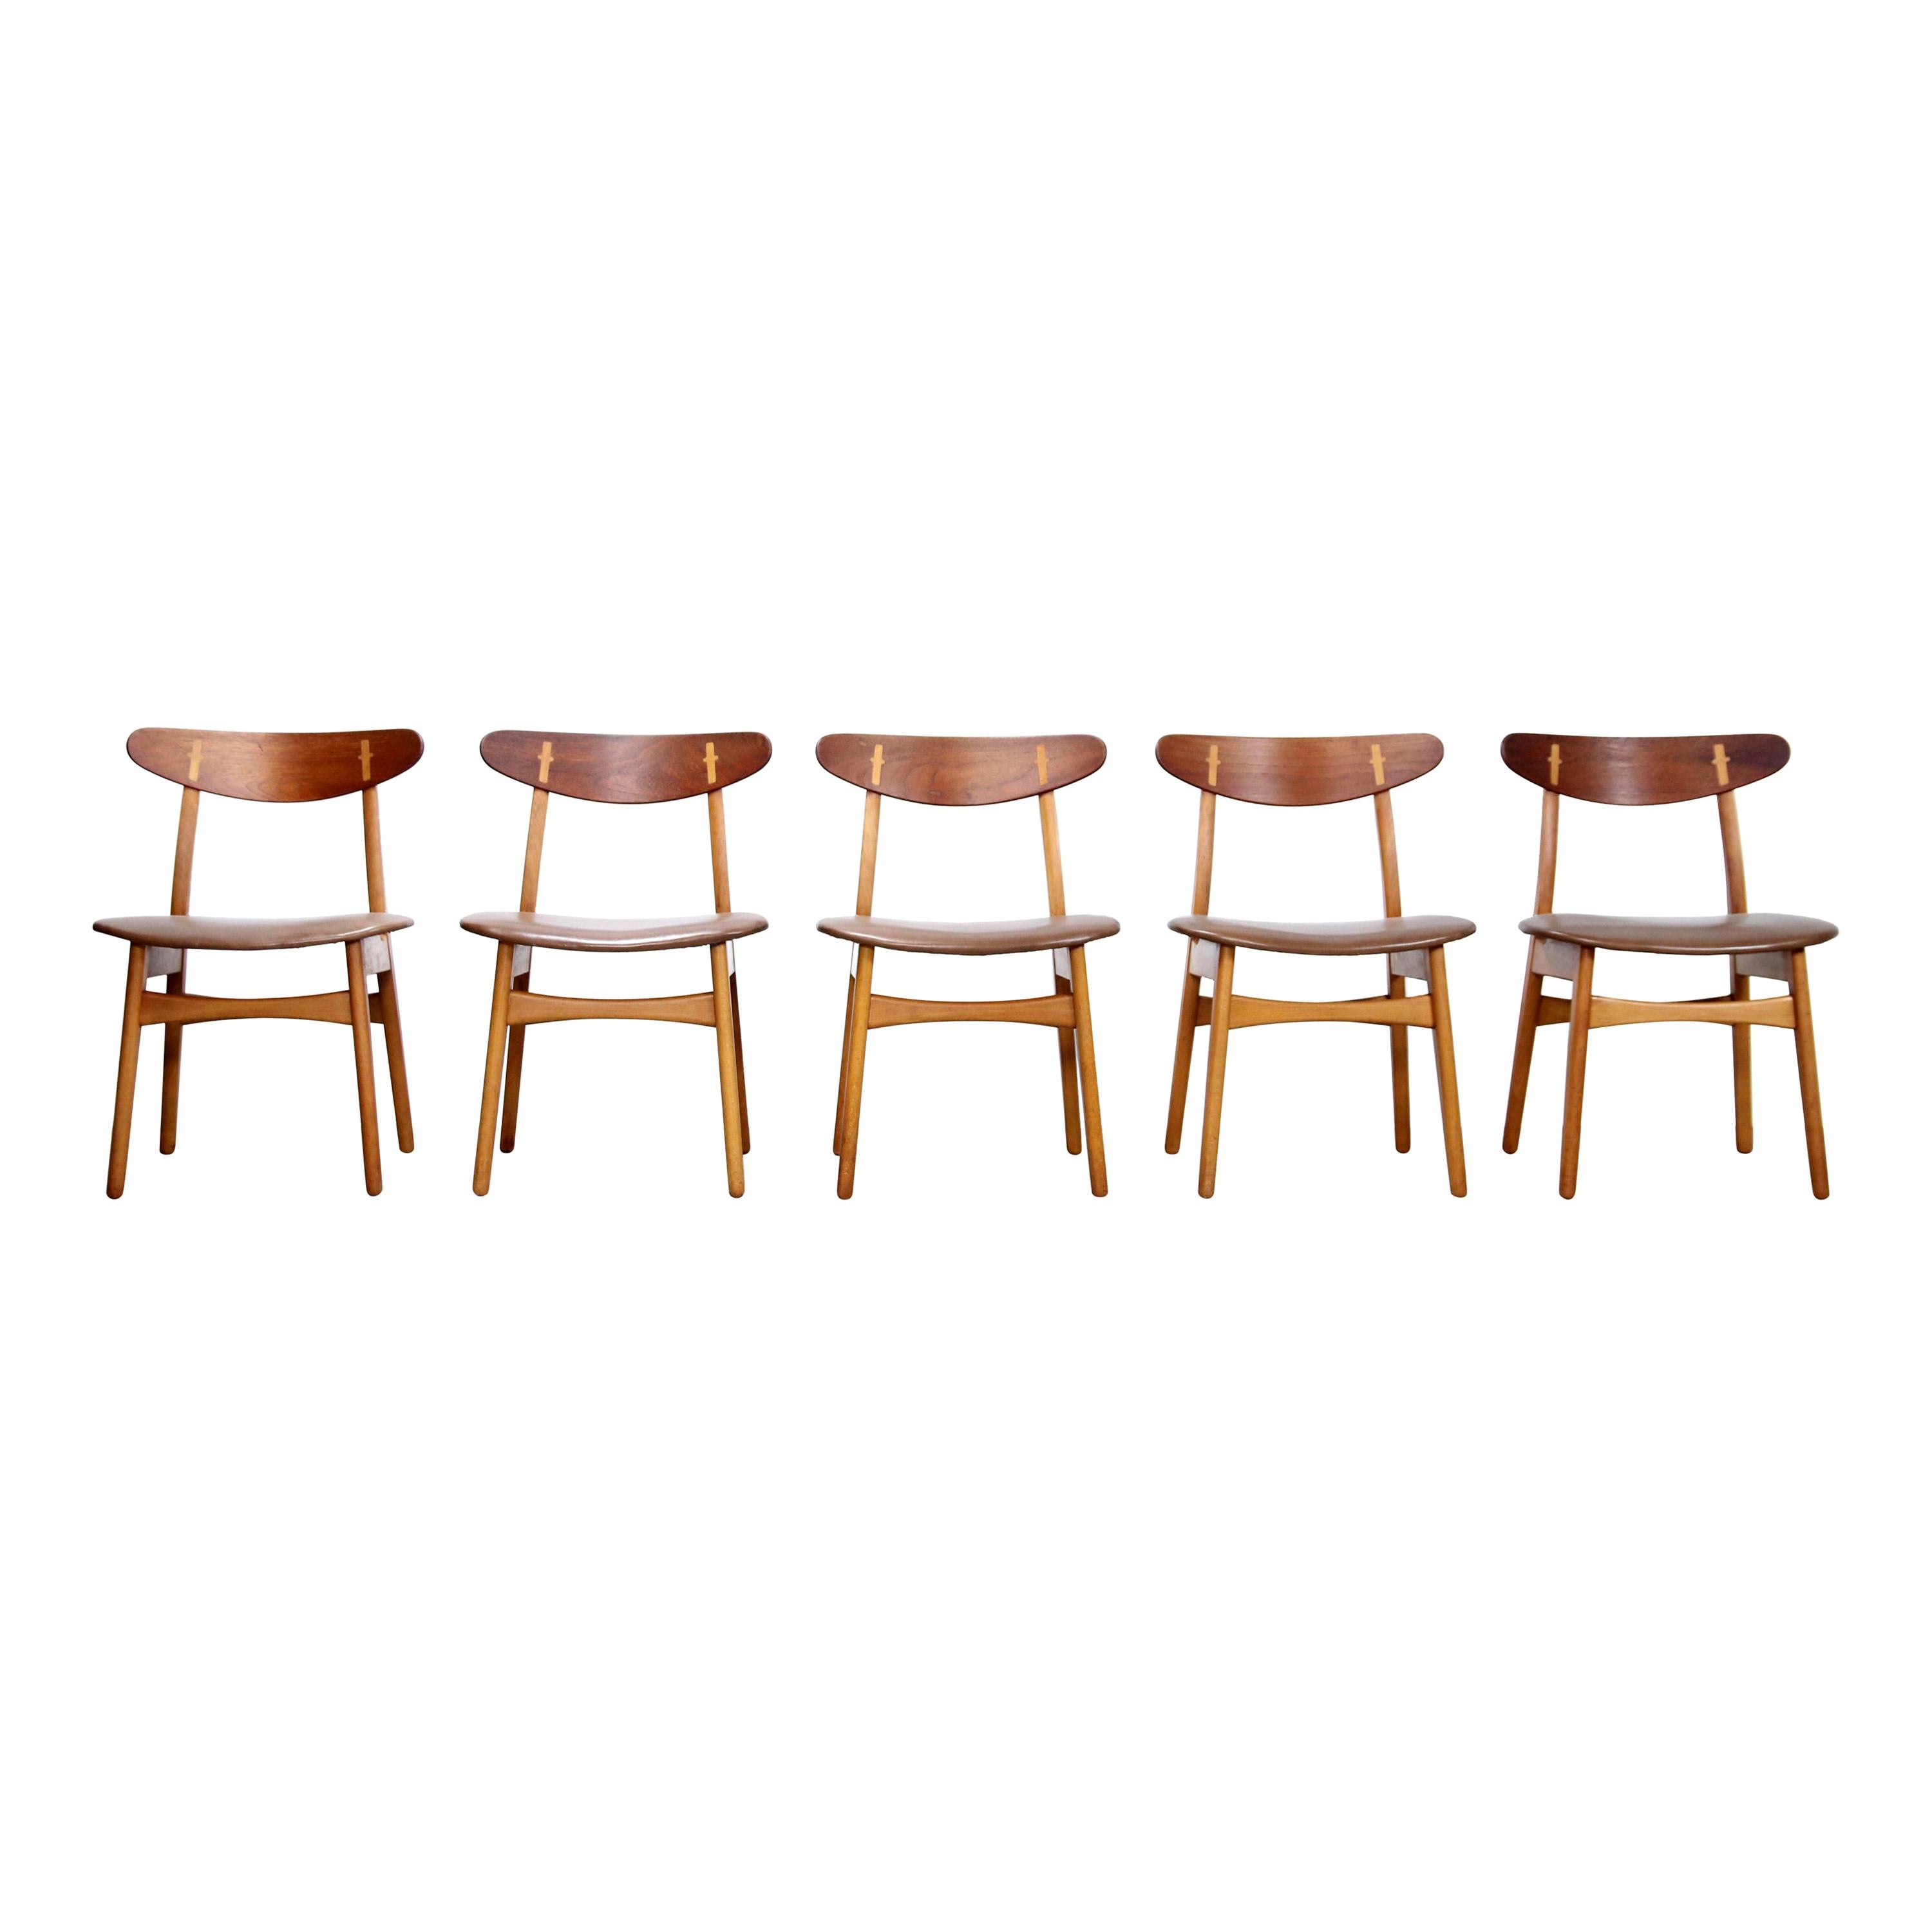 Set of Five Teak and Leather Hans Wegner CH30 Dining Chairs by Carl Hansen, 1950